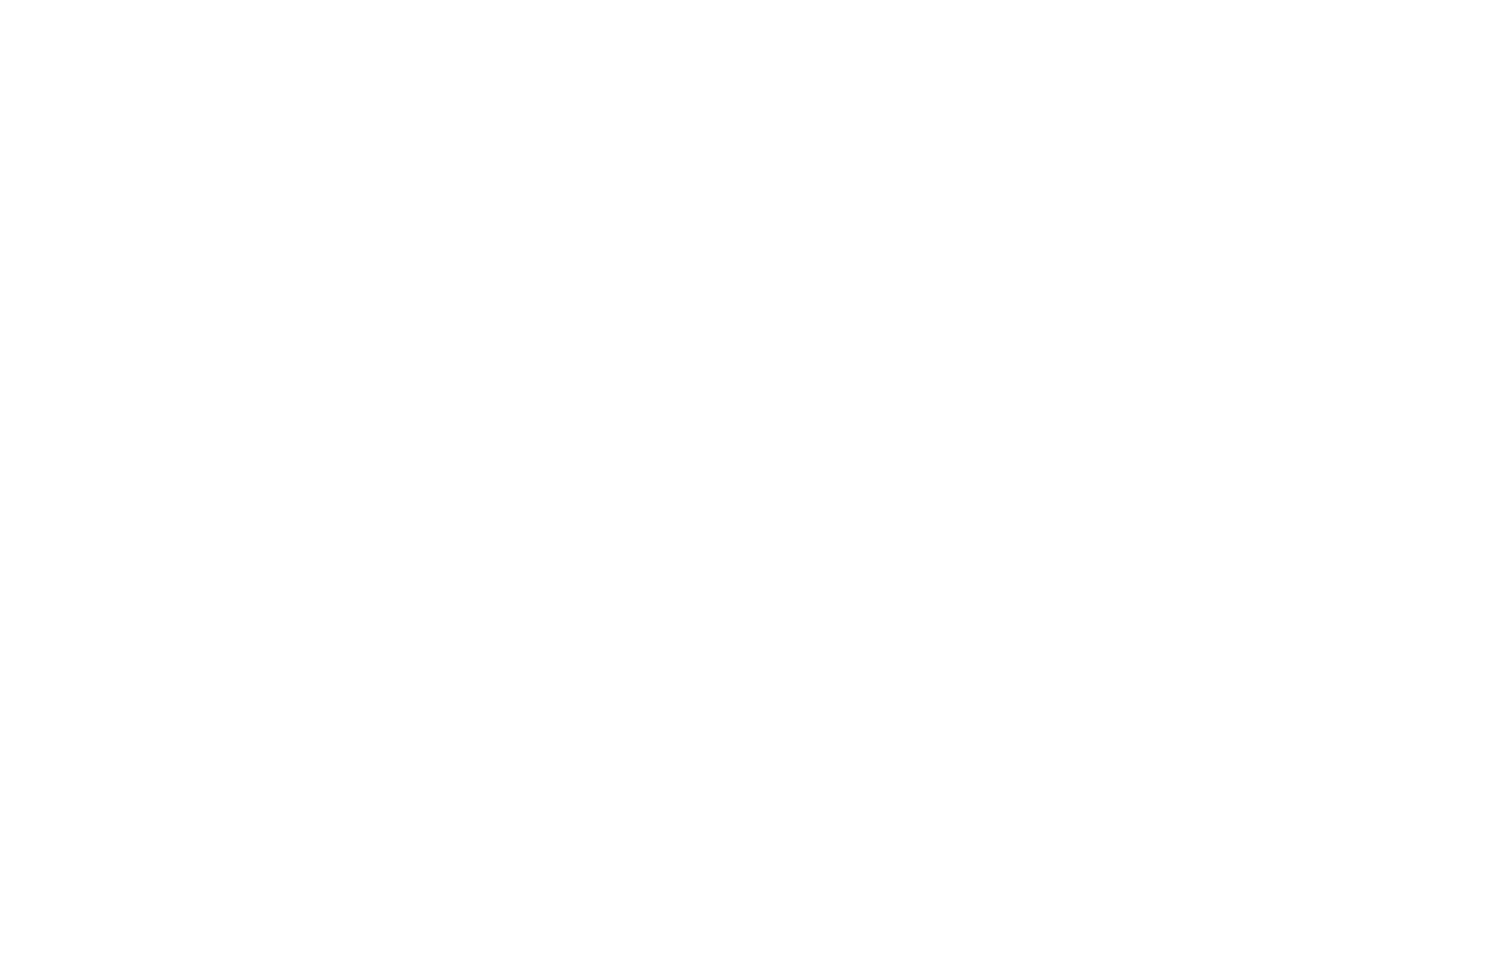 New Living Word